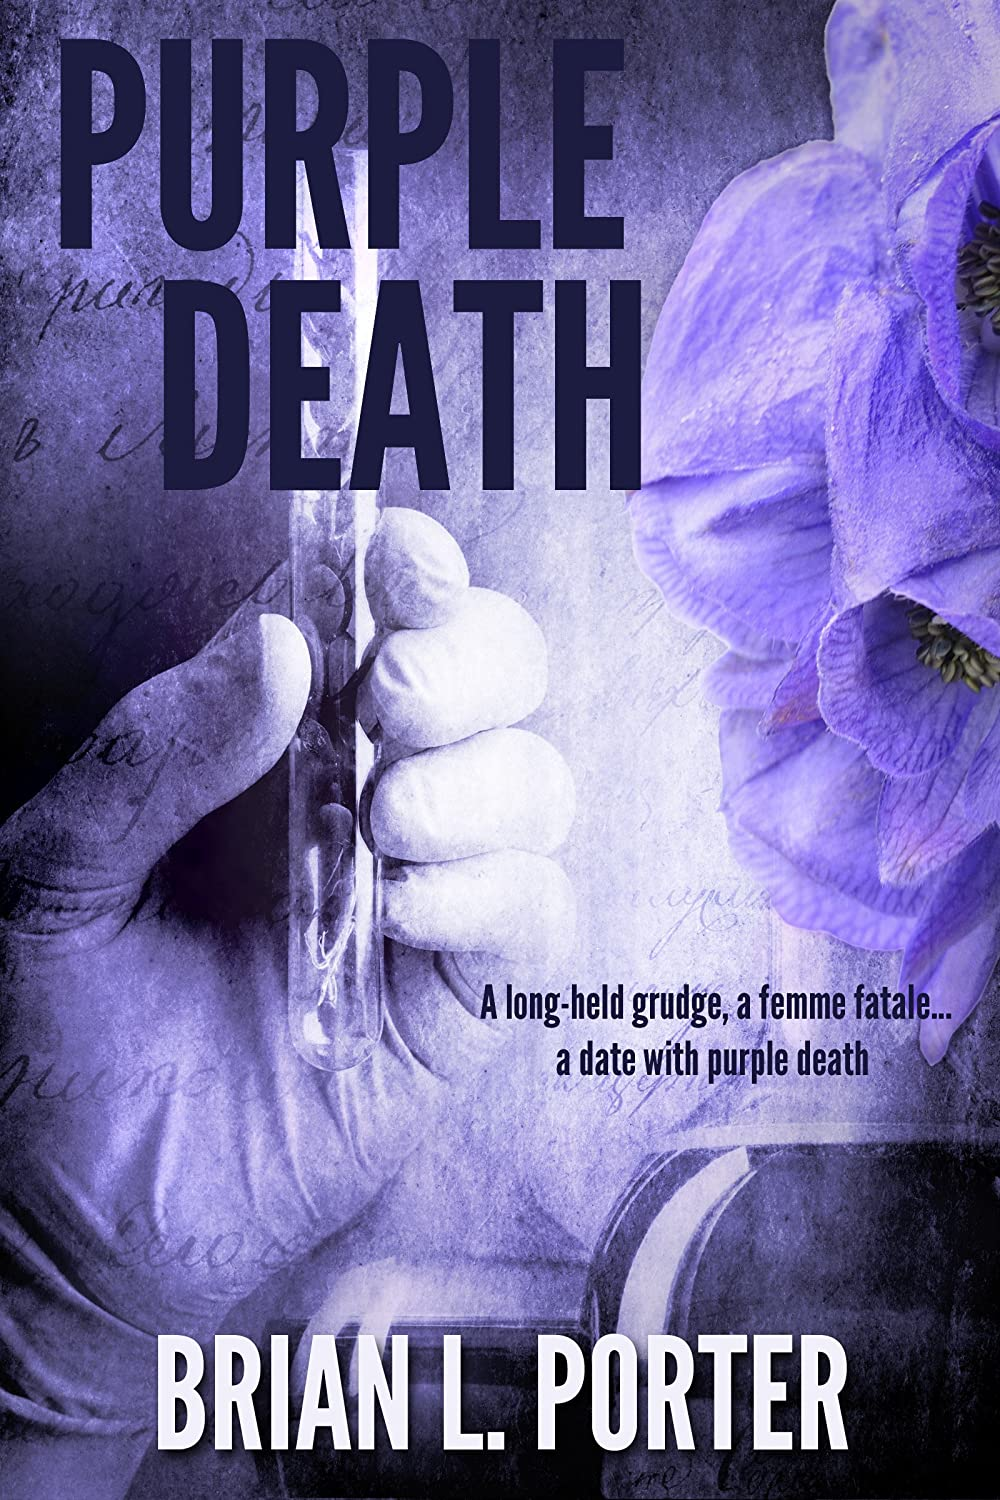 PURPLE-DEATH-COMPLETE-WITH-TAGLINE